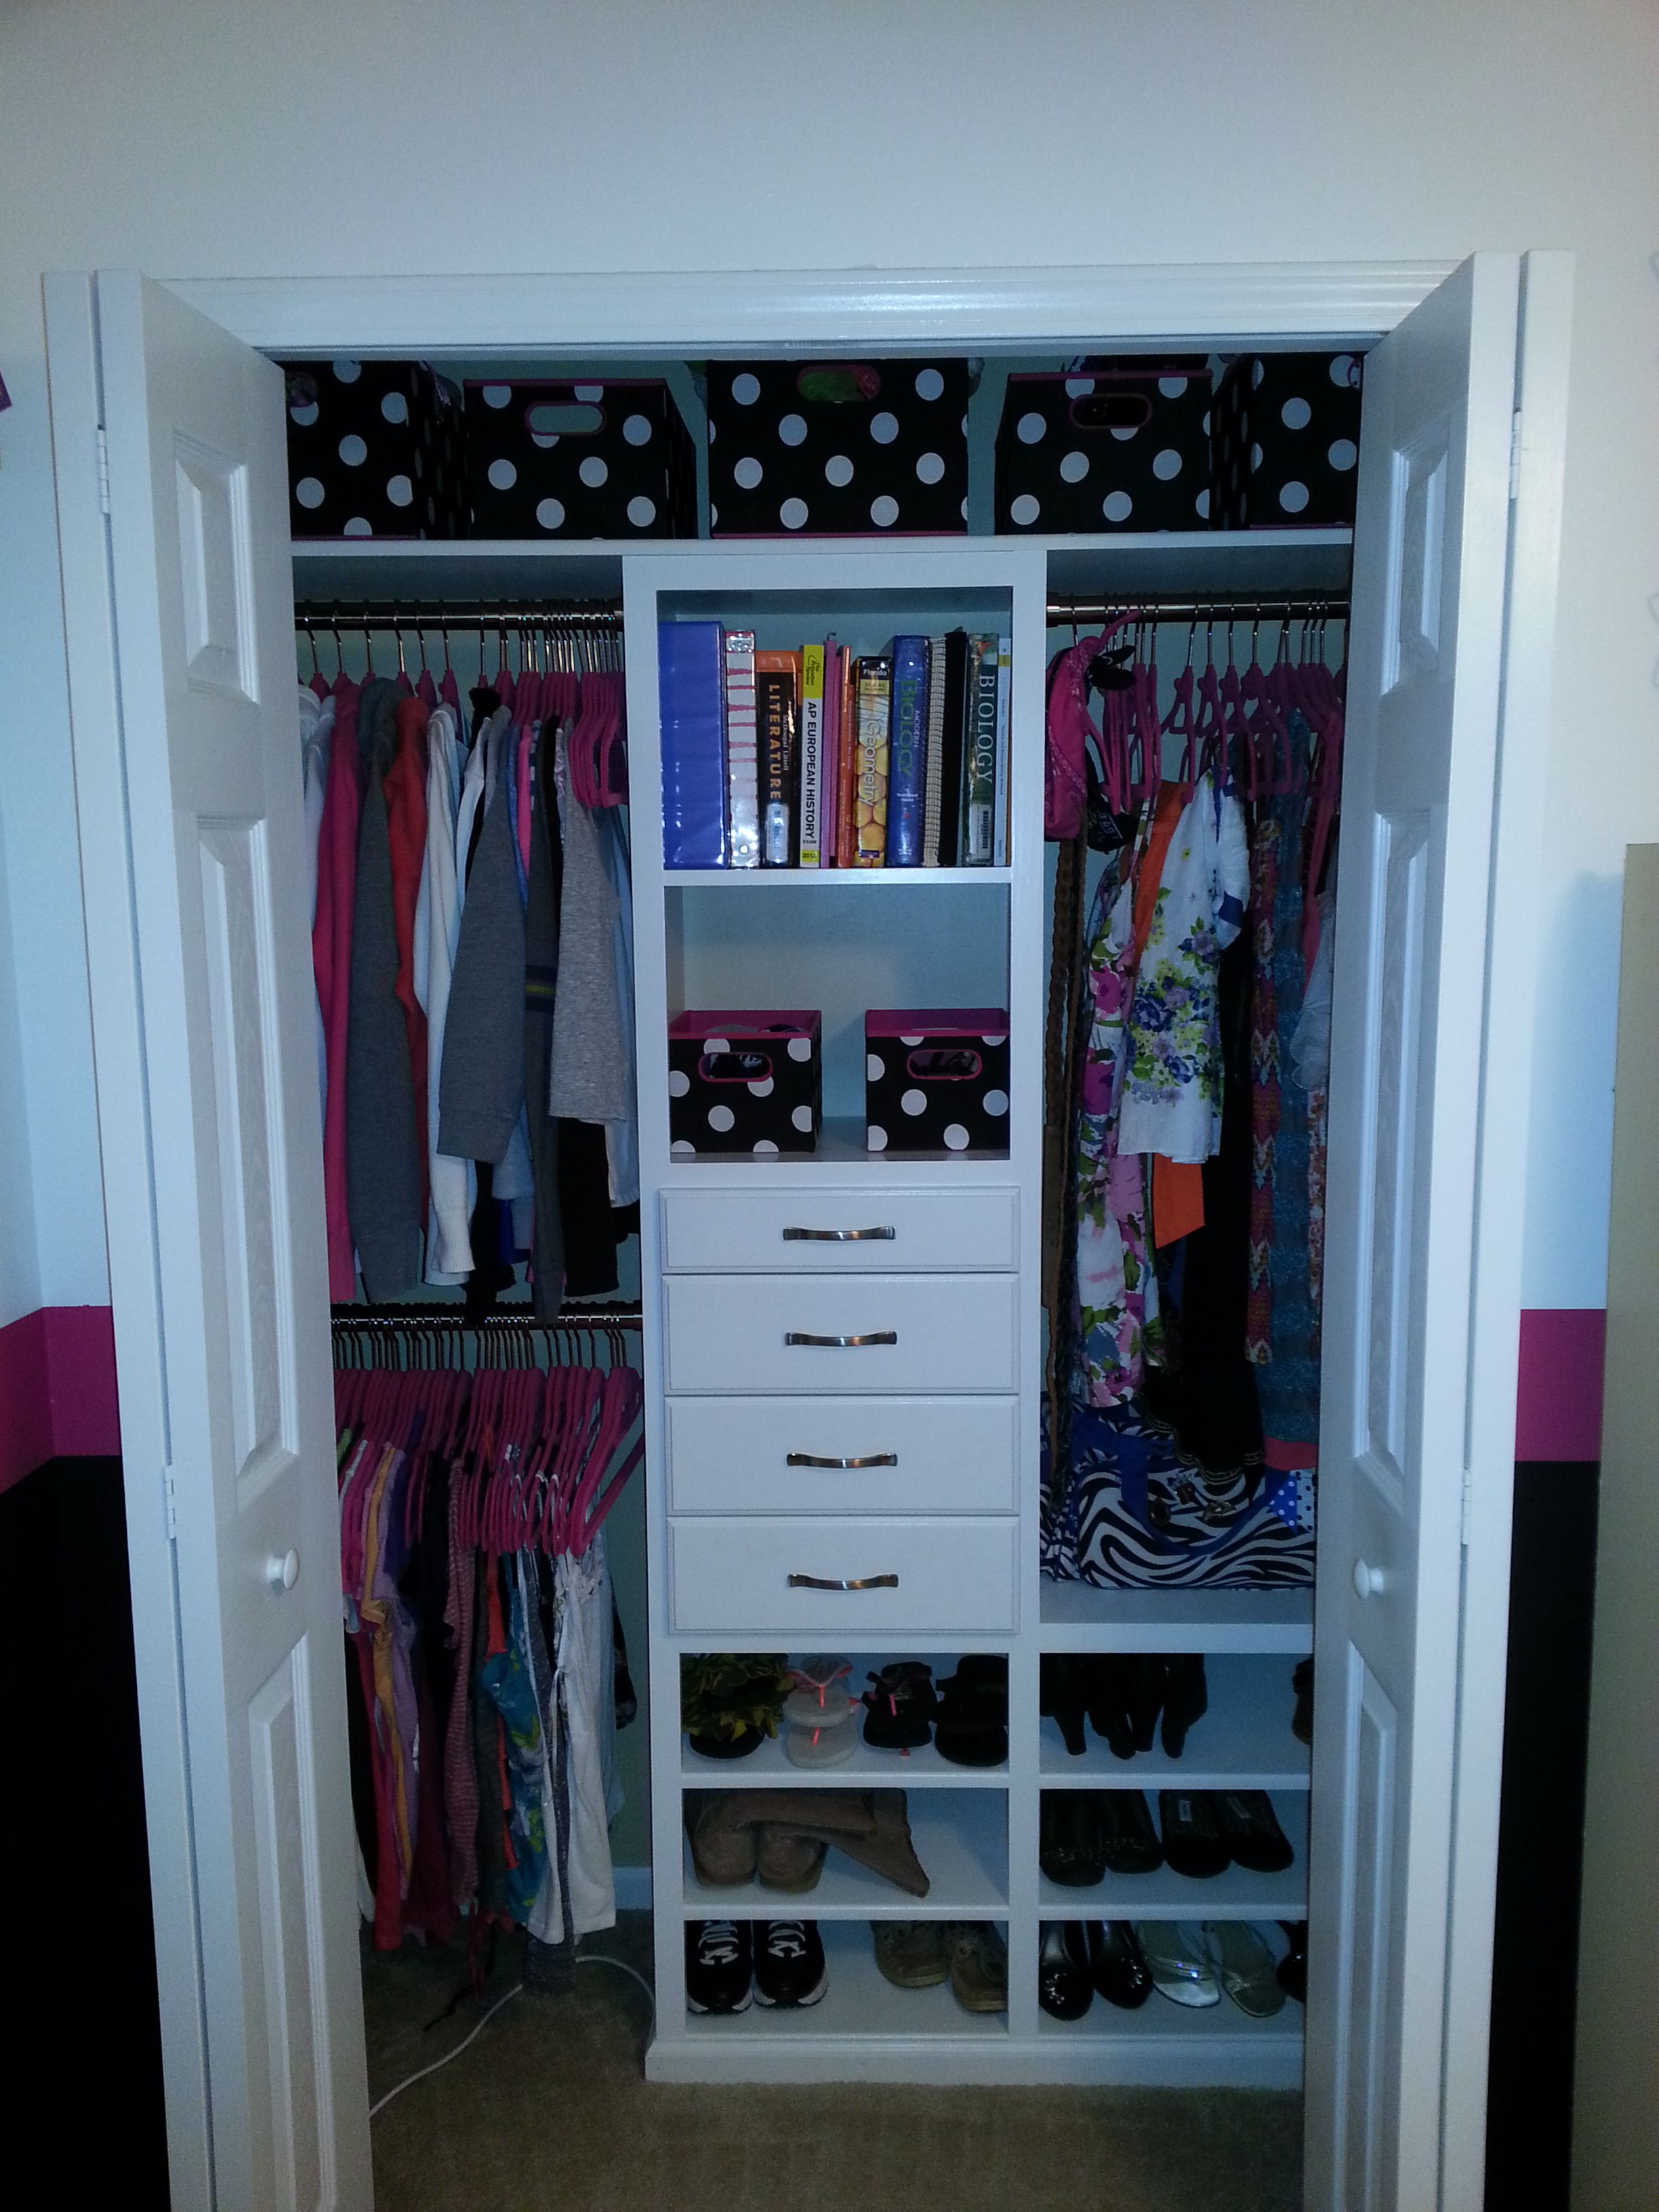 teen closet, get organized in style! free step by step diy plansteen closet, get organized in style! free step by step diy plans from ana white com plan